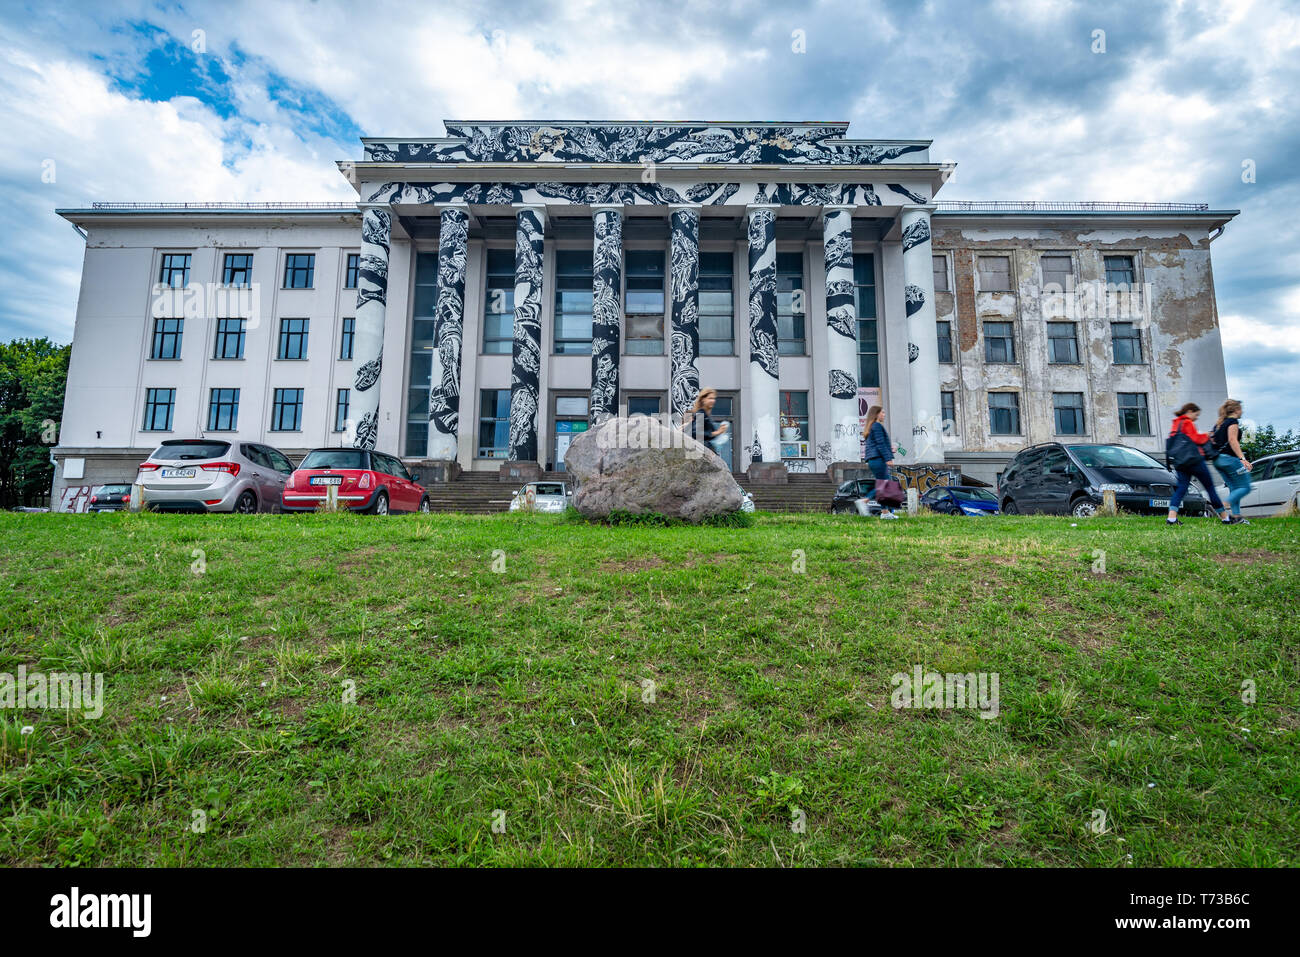 VILNIUS, LITHUANIA - JULY 5, 2018: Low angle view of the Soviet era neoclassical building adorned with graffiti located on Tauras hill, Vilnius Stock Photo